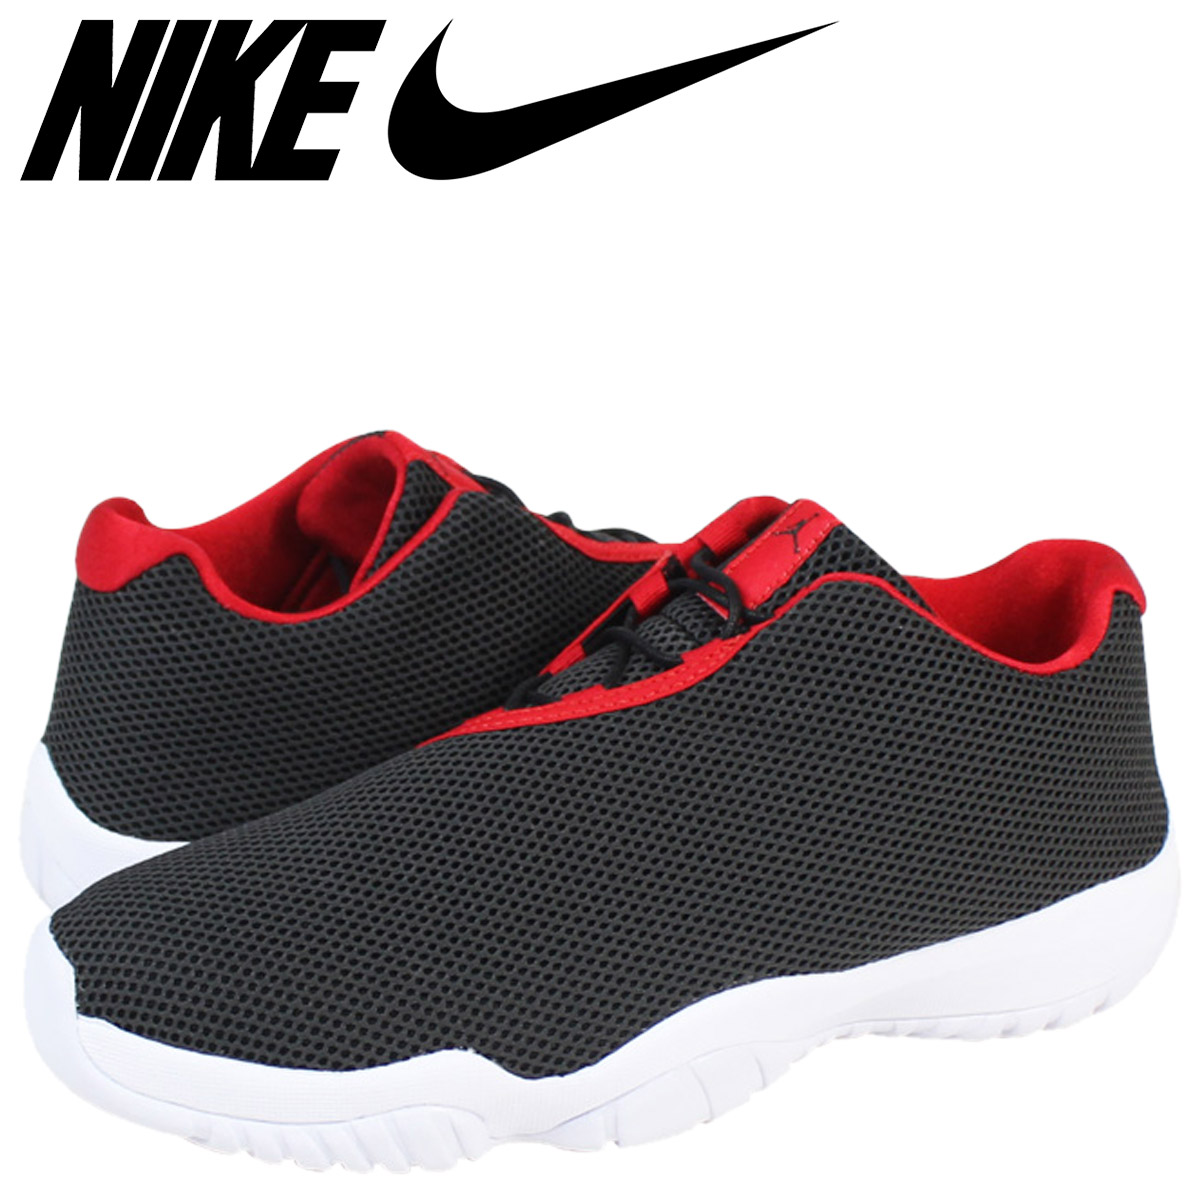 e3f3892329d Nike NIKE Air Jordan sneakers AIR JORDAN FUTURE LOW Air Jordan future rows  718948-001 ...